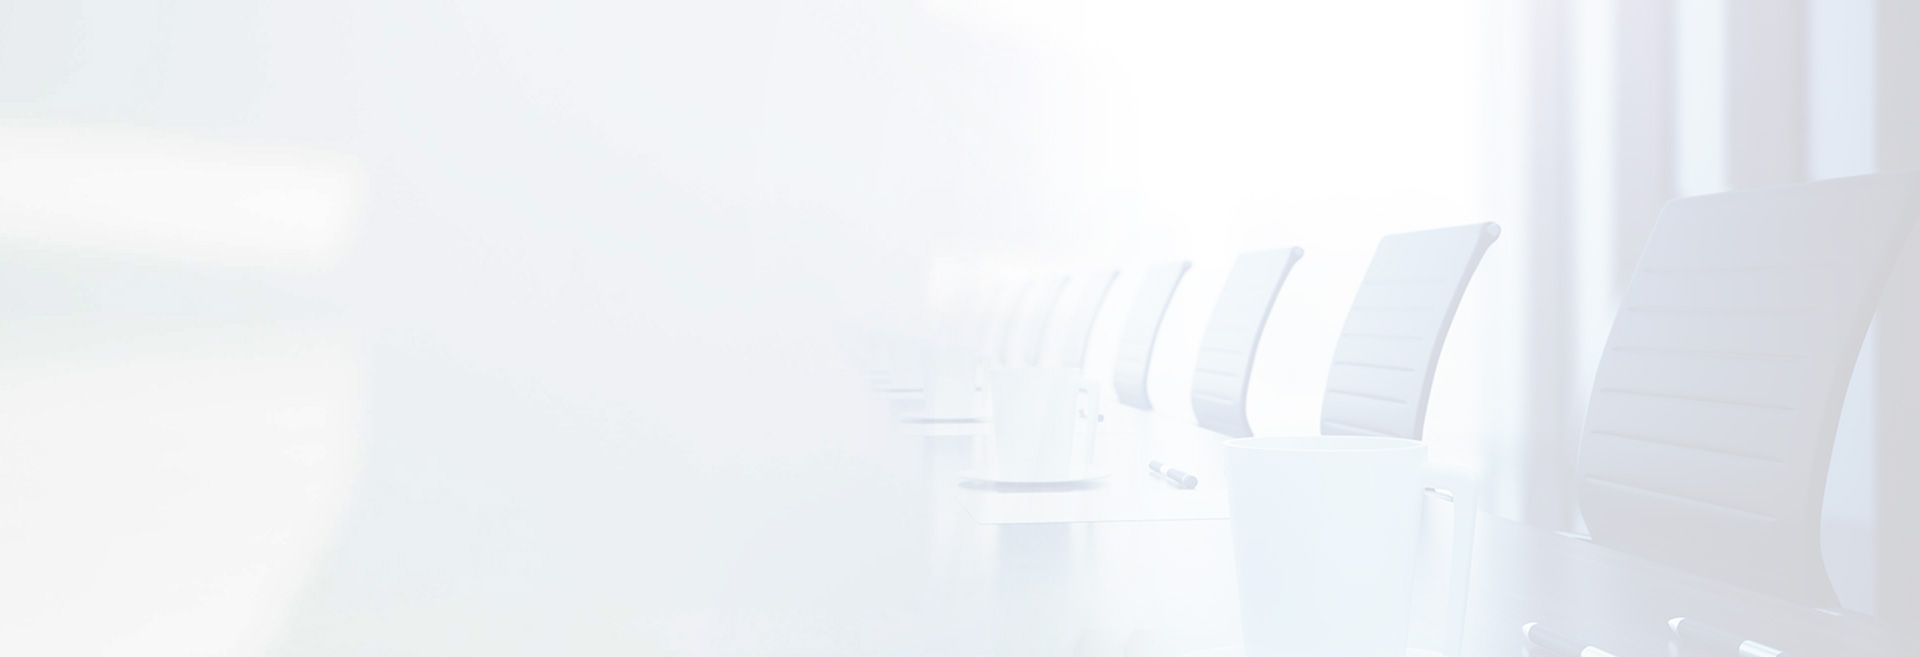 Corporate-banner-image-10